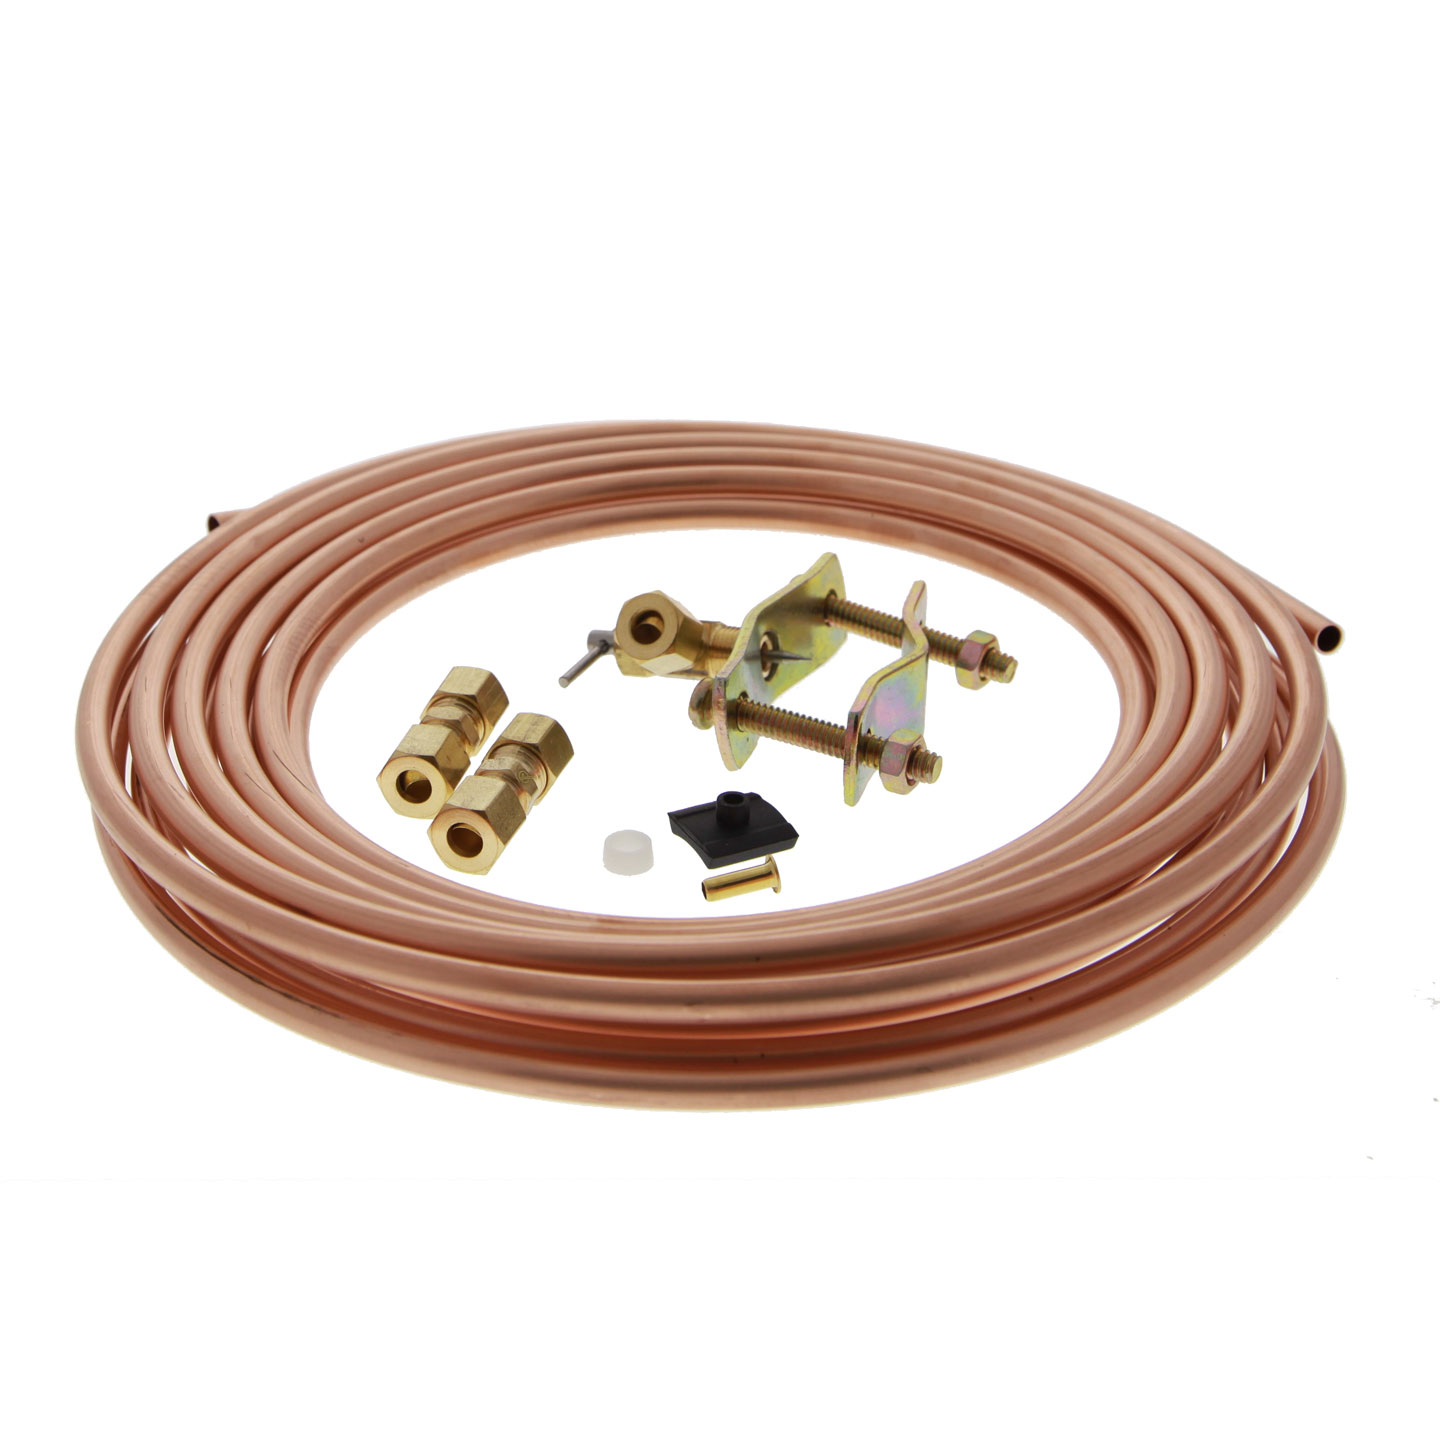 Copper 1/4-inch Water Line Install Supply Line Kit